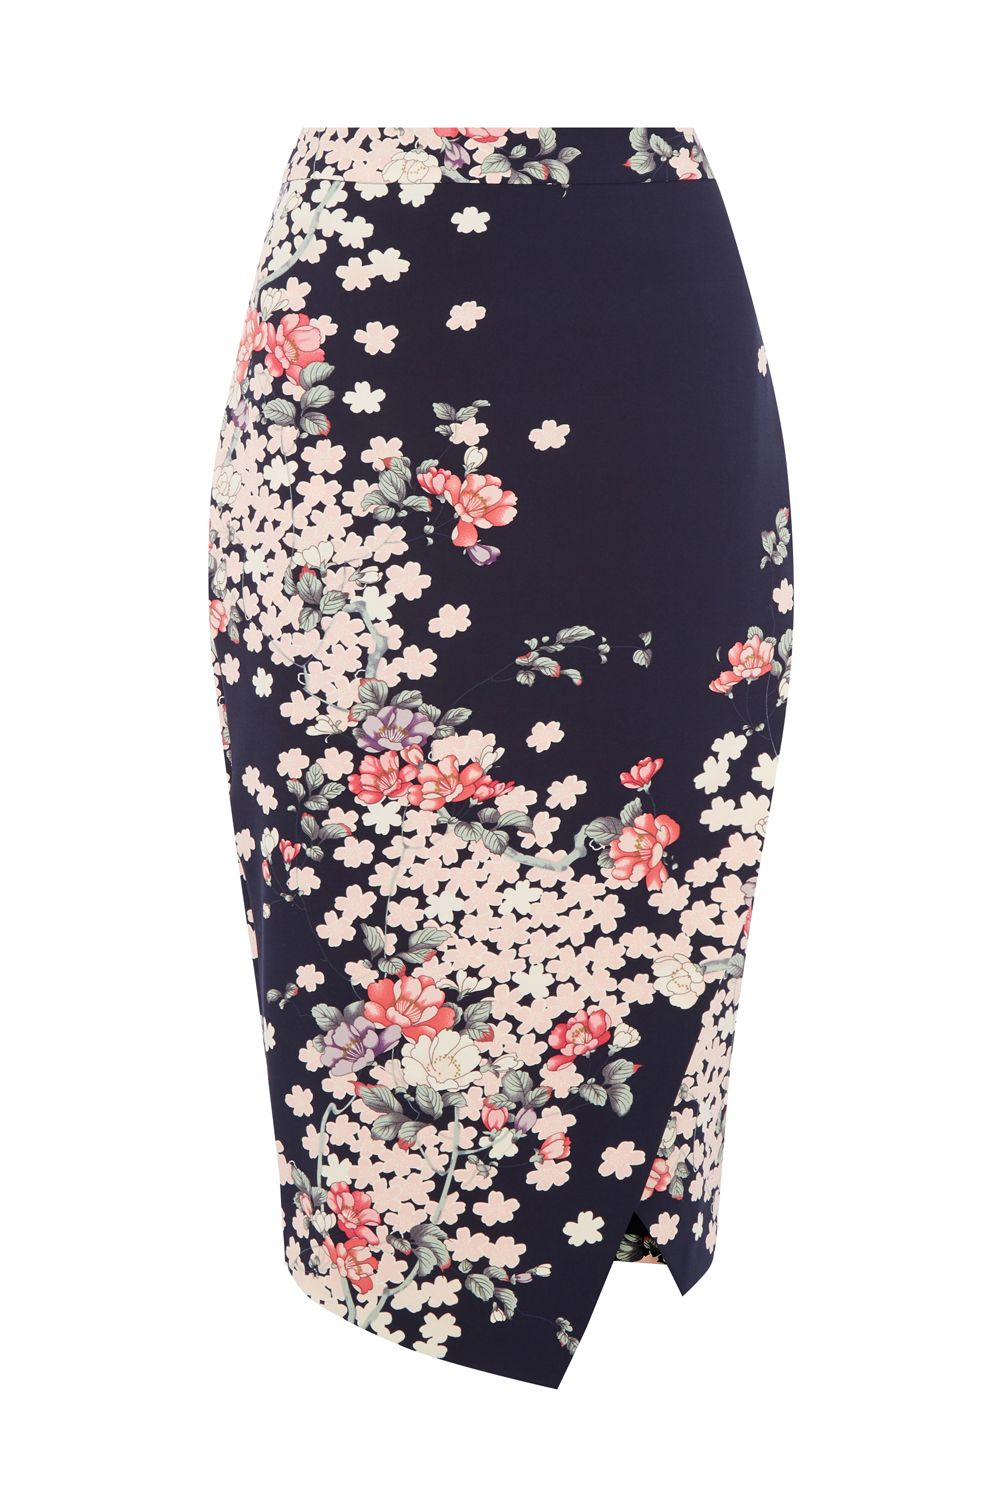 Oasis KIMONO WRAP PENCIL SKIRT, Multi-Coloured